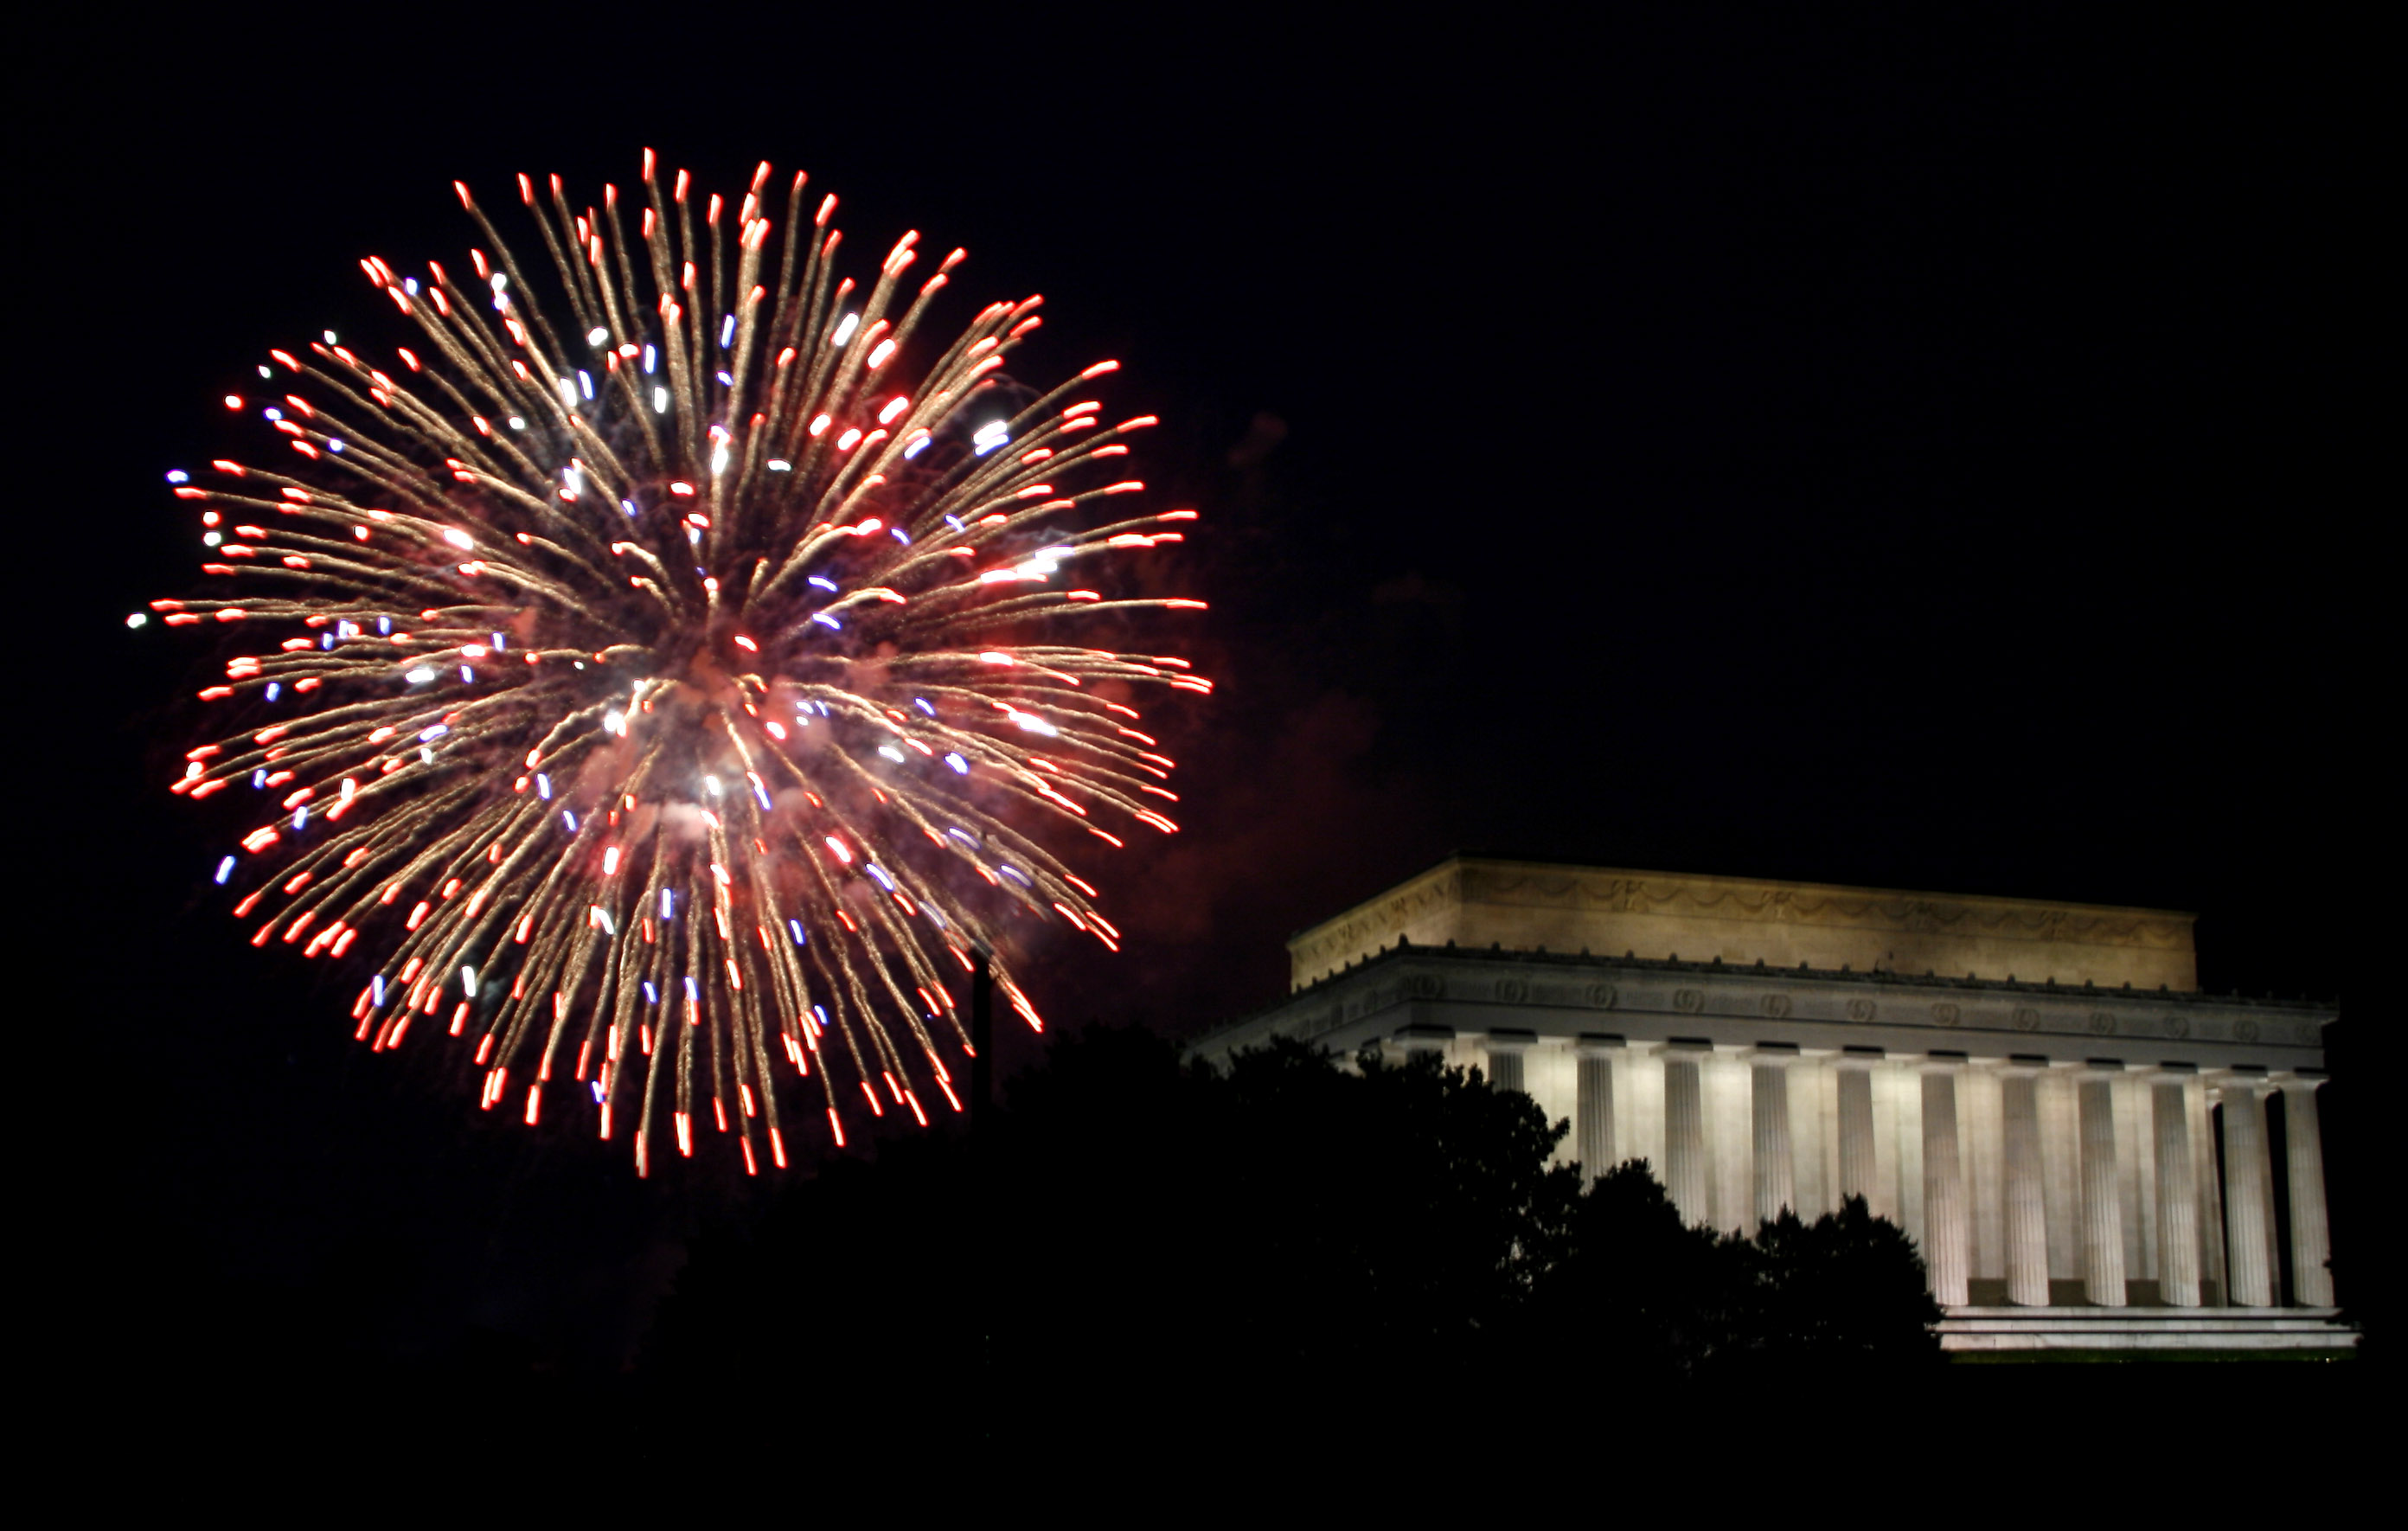 Lincoln Memorial Fireworks